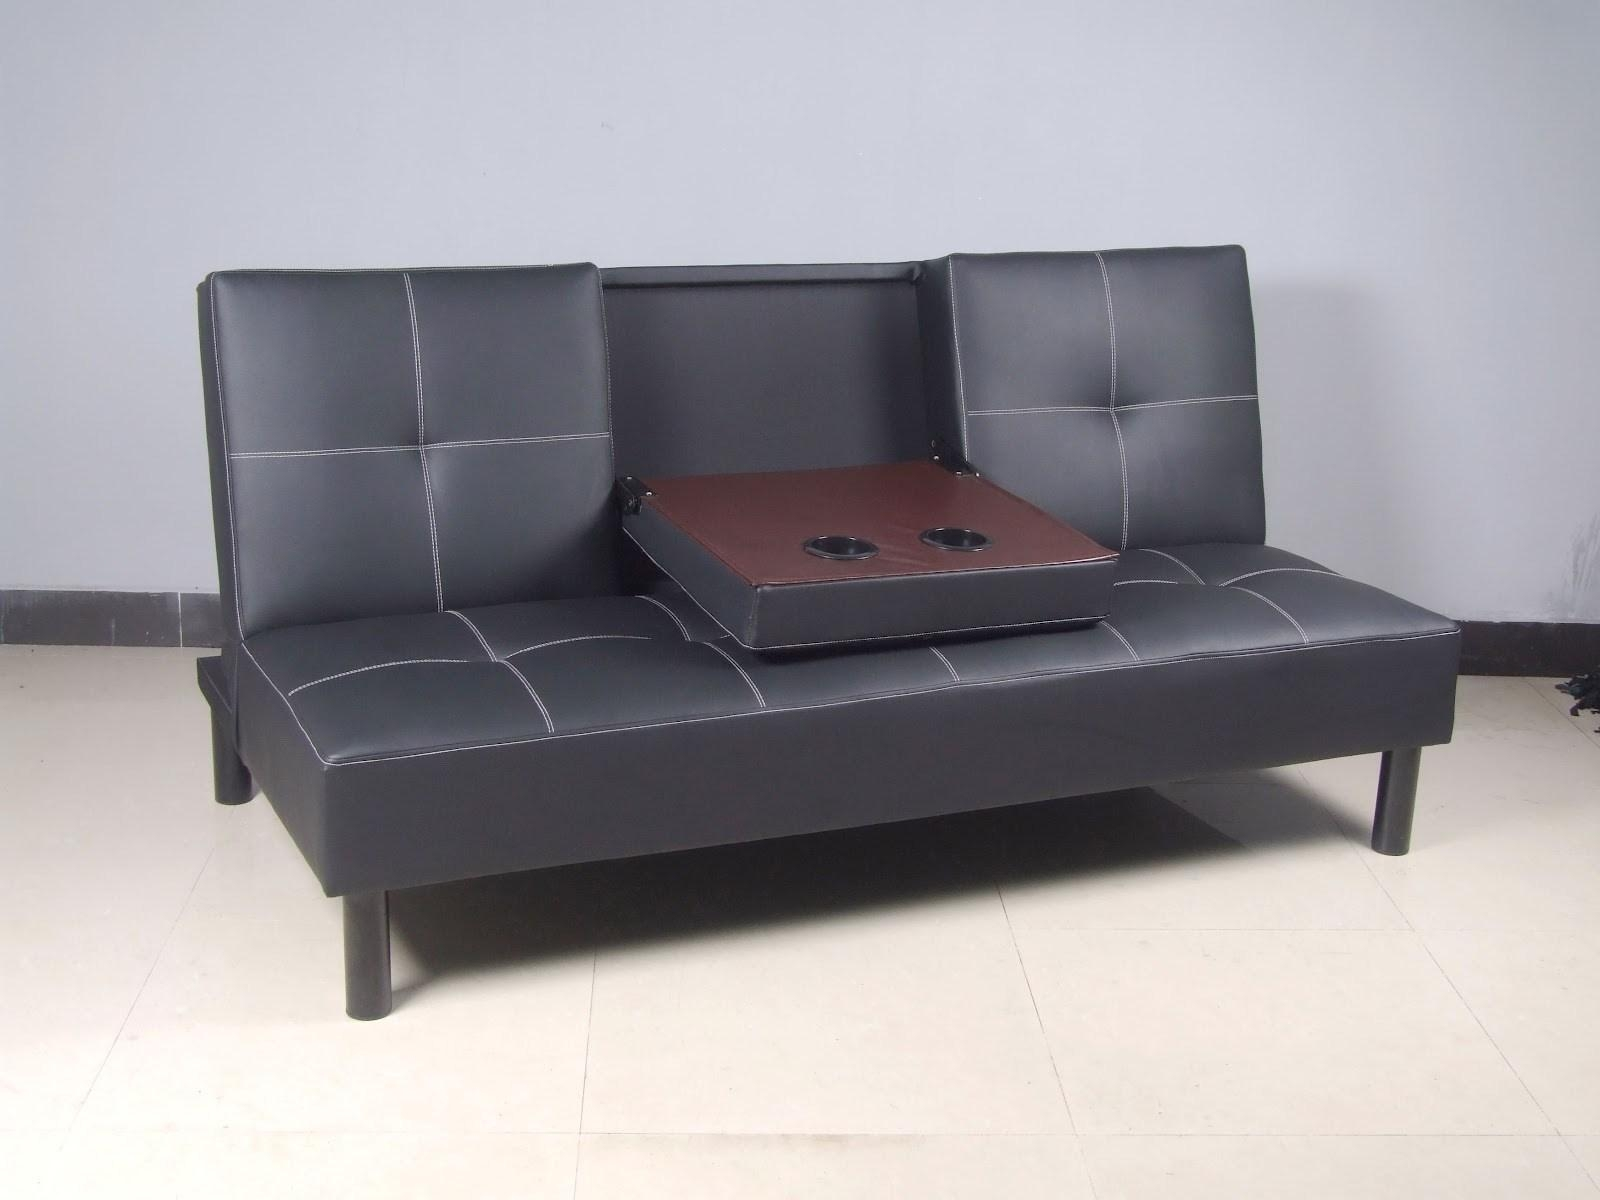 ▻ Sofa : 9 Corner Sofa Bed Ikea Alluring Sectional Sofa Bed Ikea With Regard To Cheap Corner Sofa Beds (View 17 of 20)